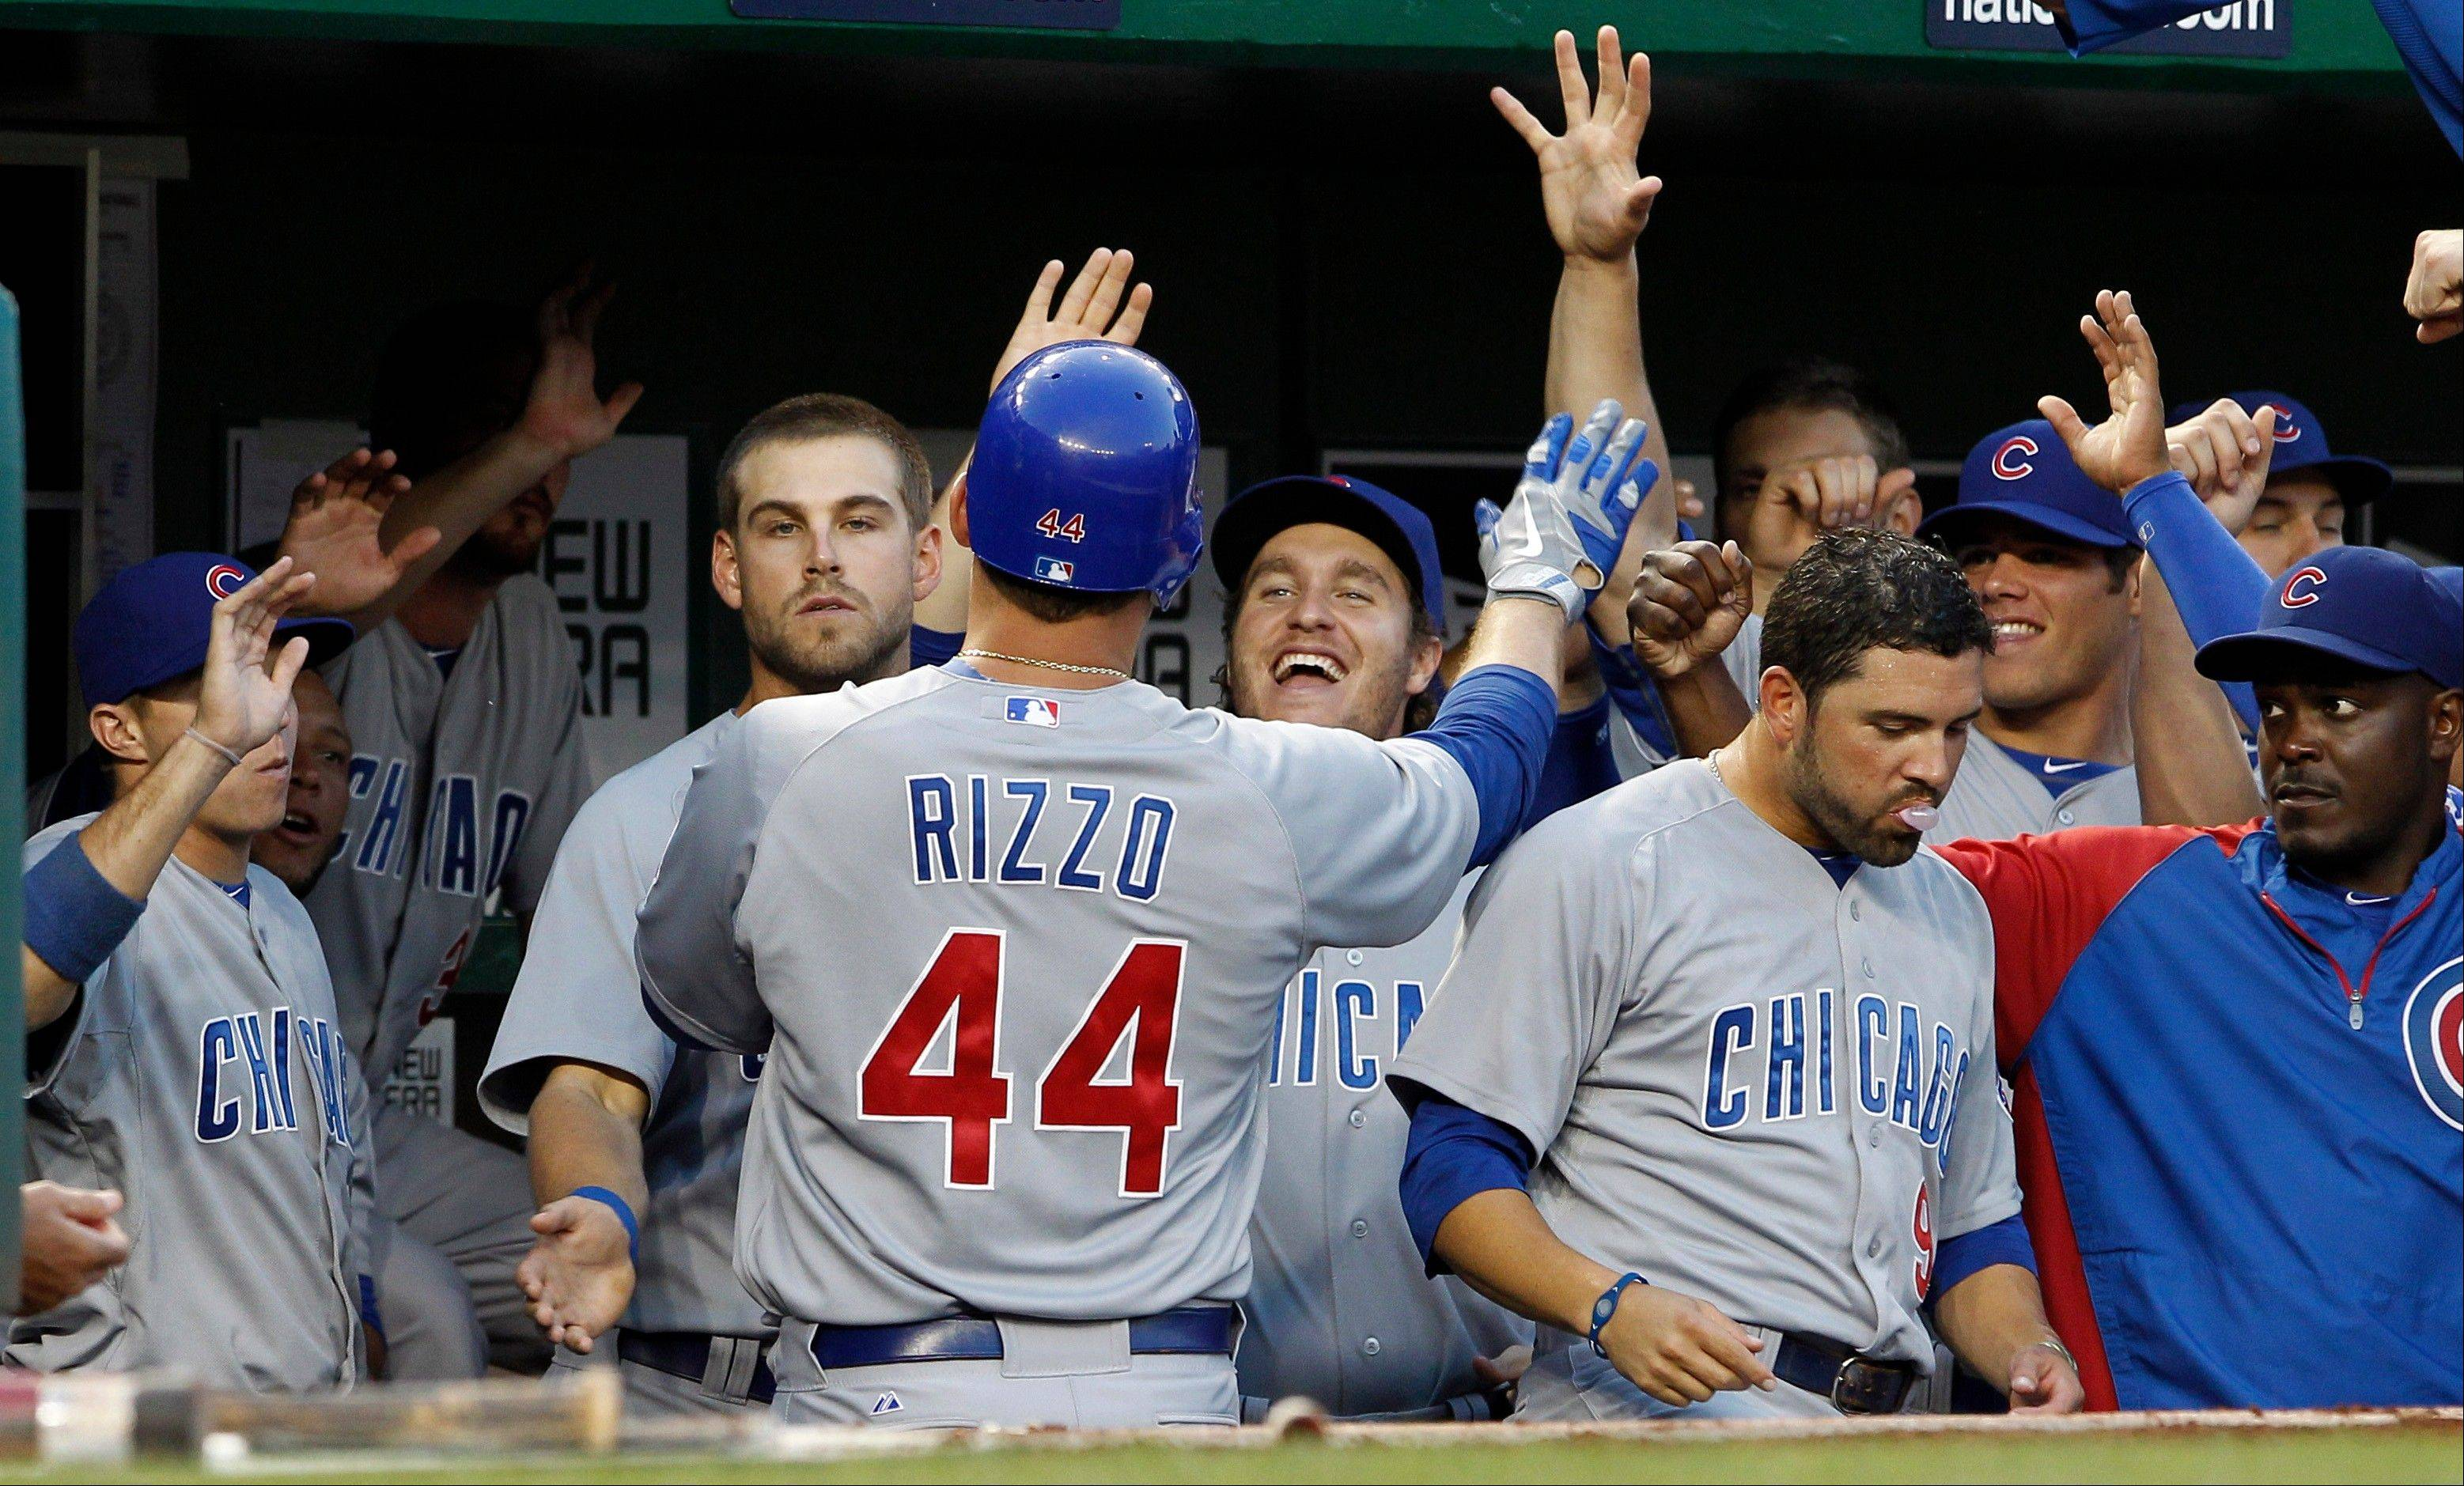 Chicago Cubs' Anthony Rizzo (44) celebrates with teammates after his solo home run during the first inning of a baseball game with the Washington Nationals at Nationals Park, Thursday, Sept. 6, 2012, in Washington. (AP Photo/Alex Brandon)